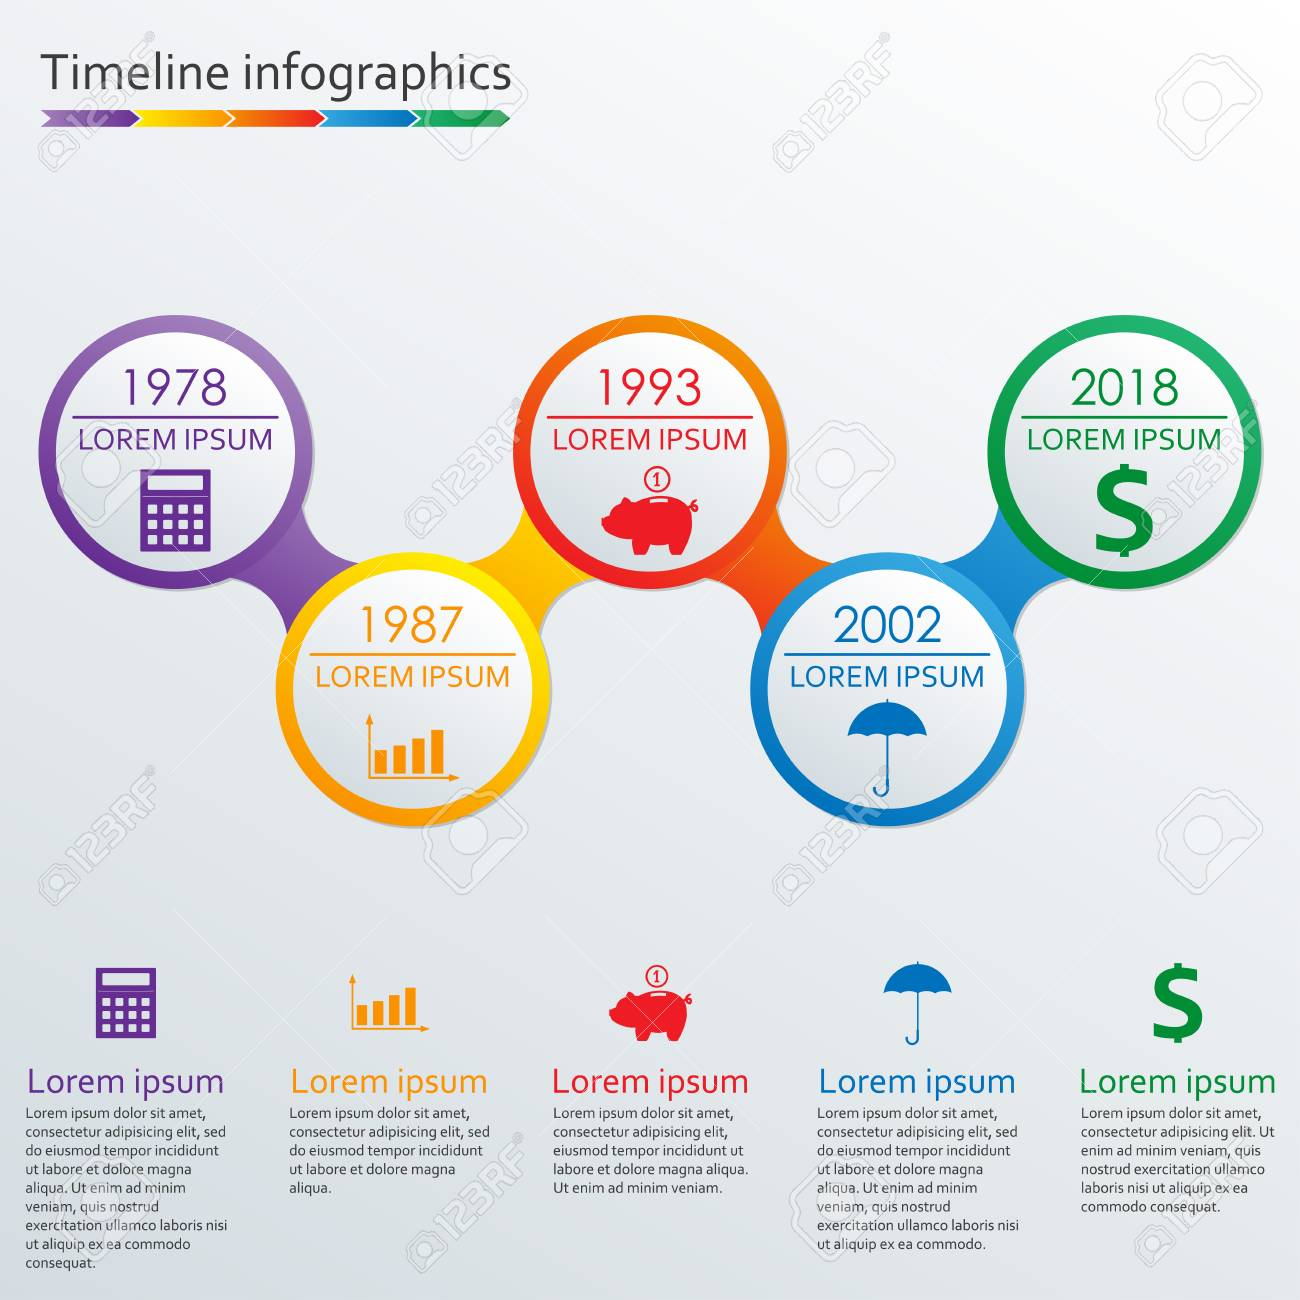 timeline infographics template. horizontal timeline infographic